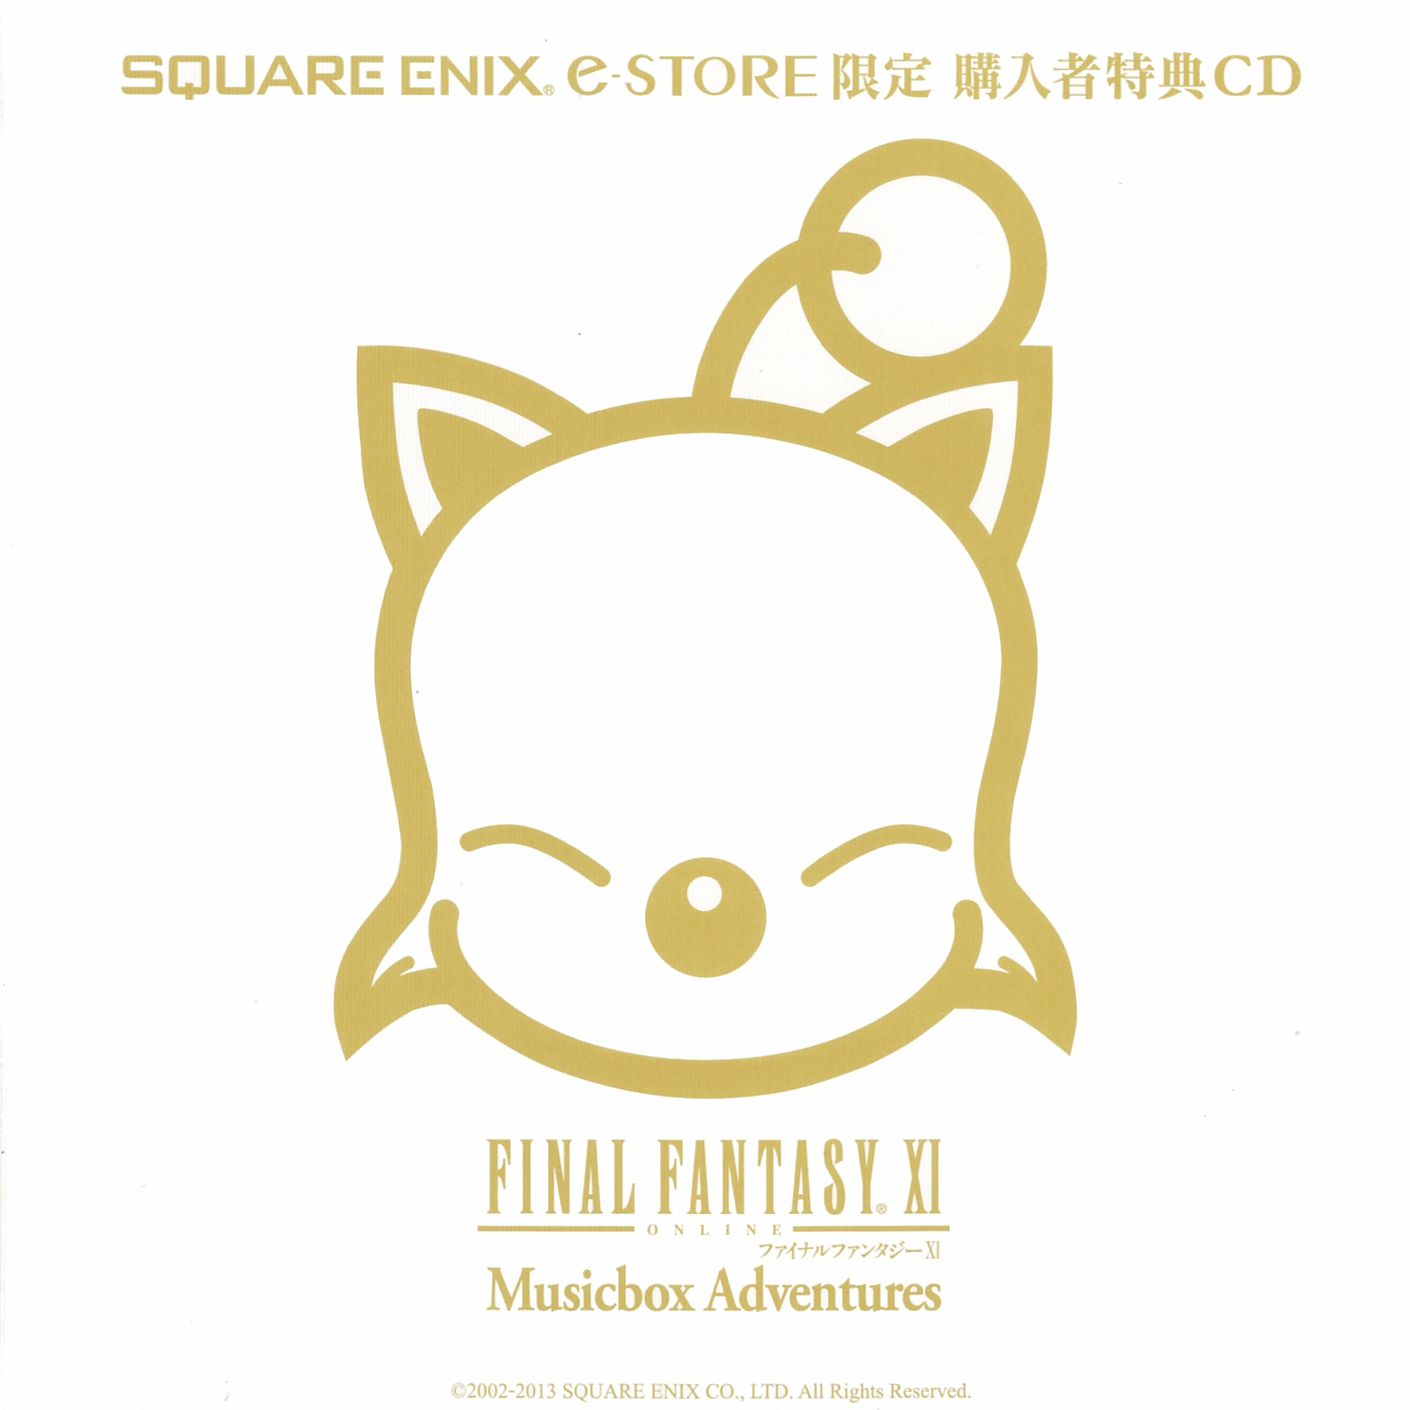 FINAL FANTASY XI Musicbox Adventures